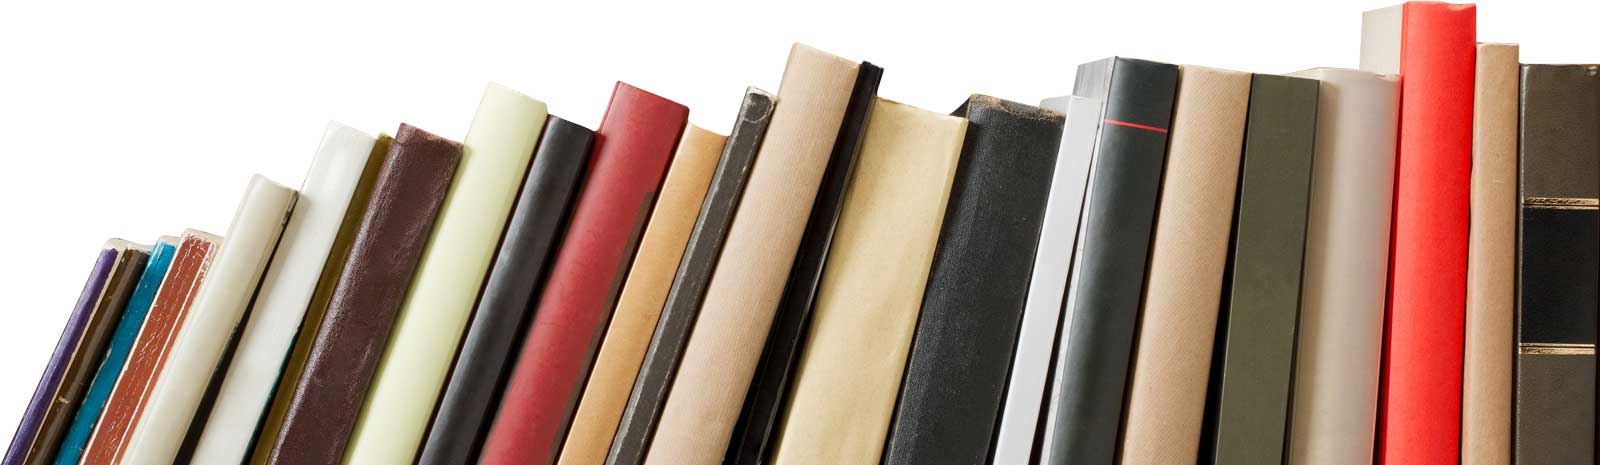 Tips for self-publishing your book